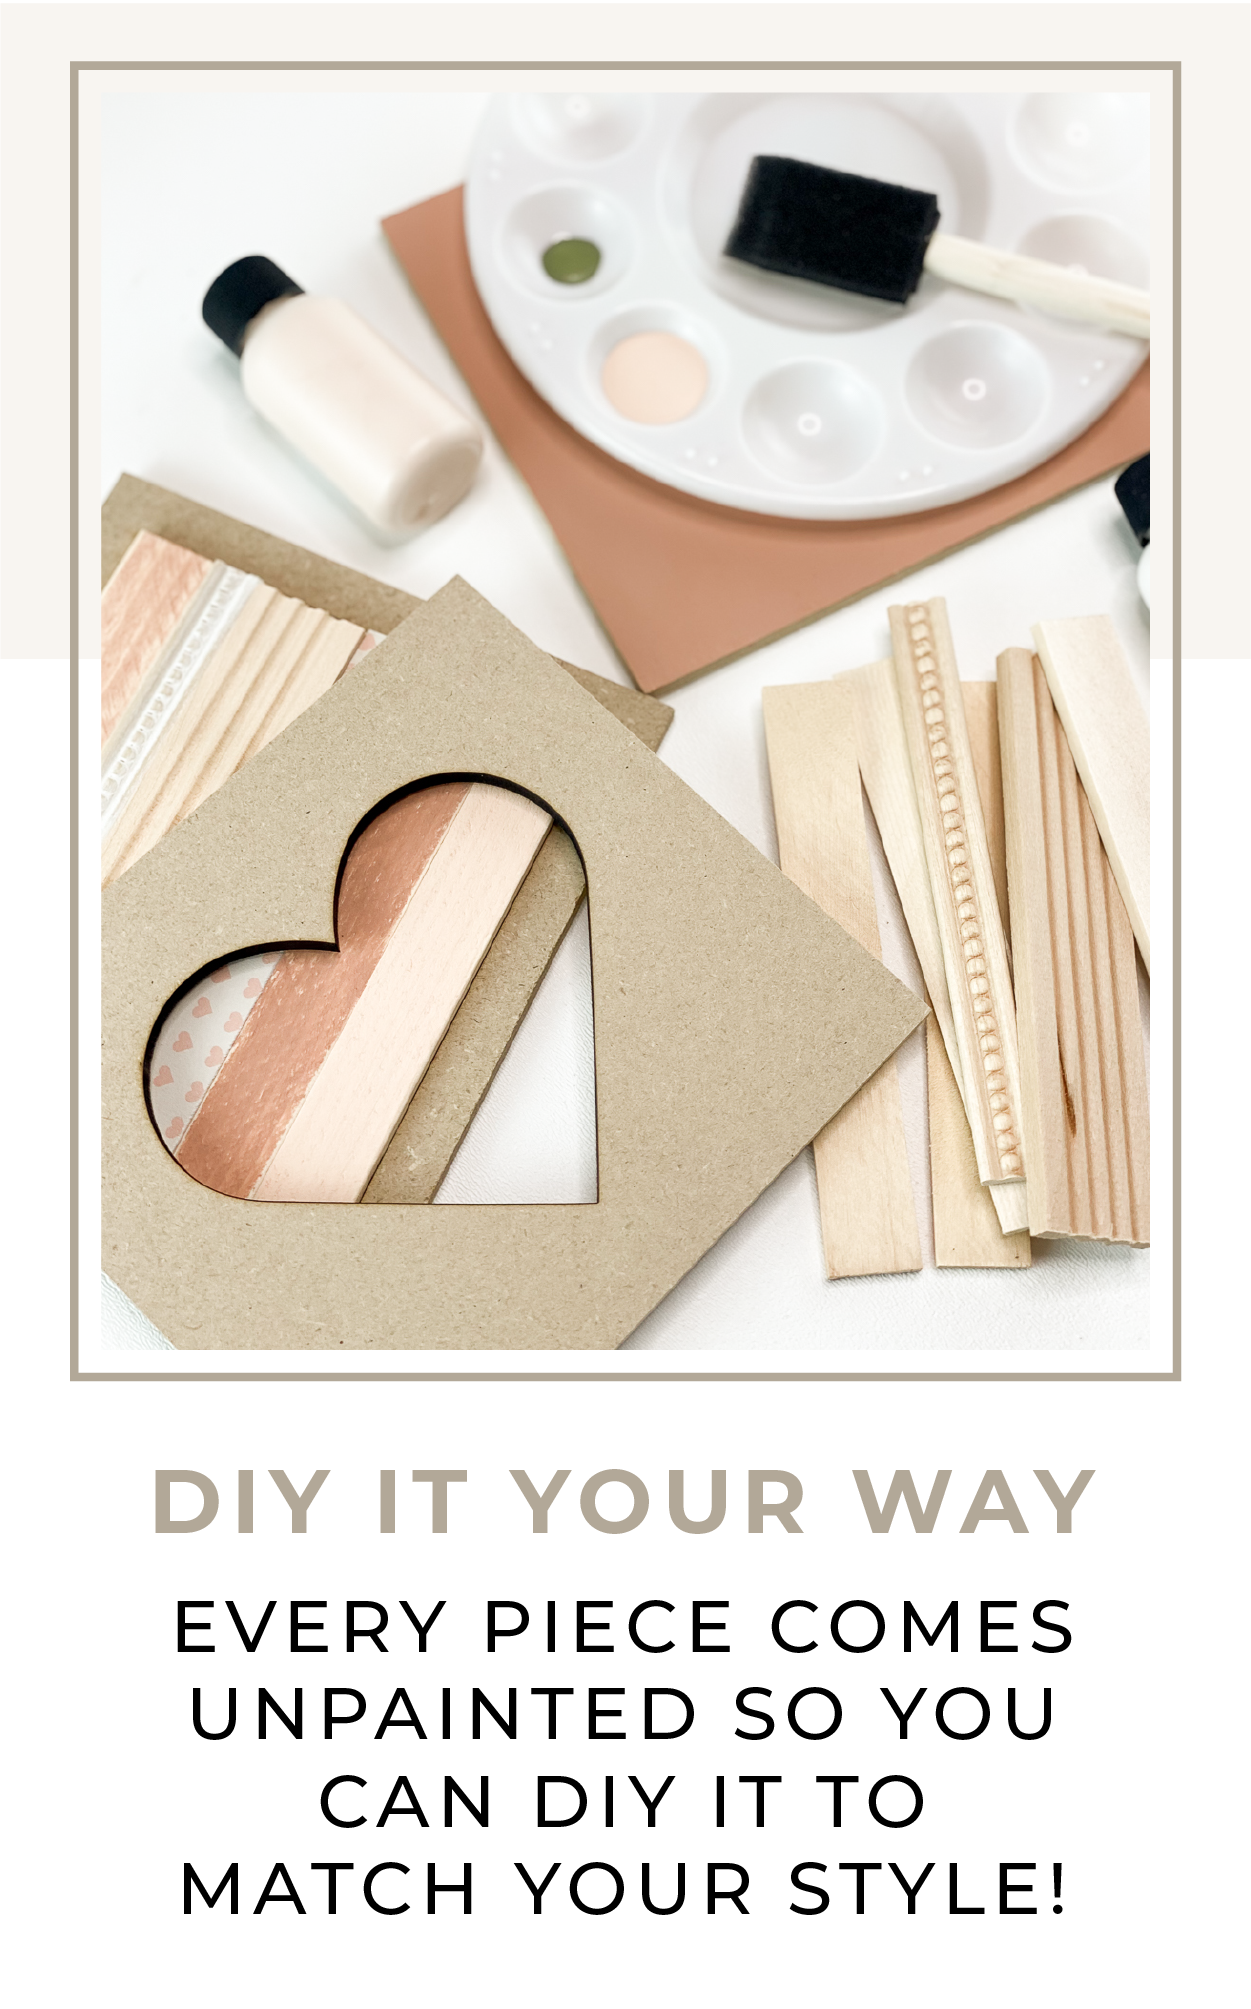 Every piece comes unpainted so you can DIY it to match your style!